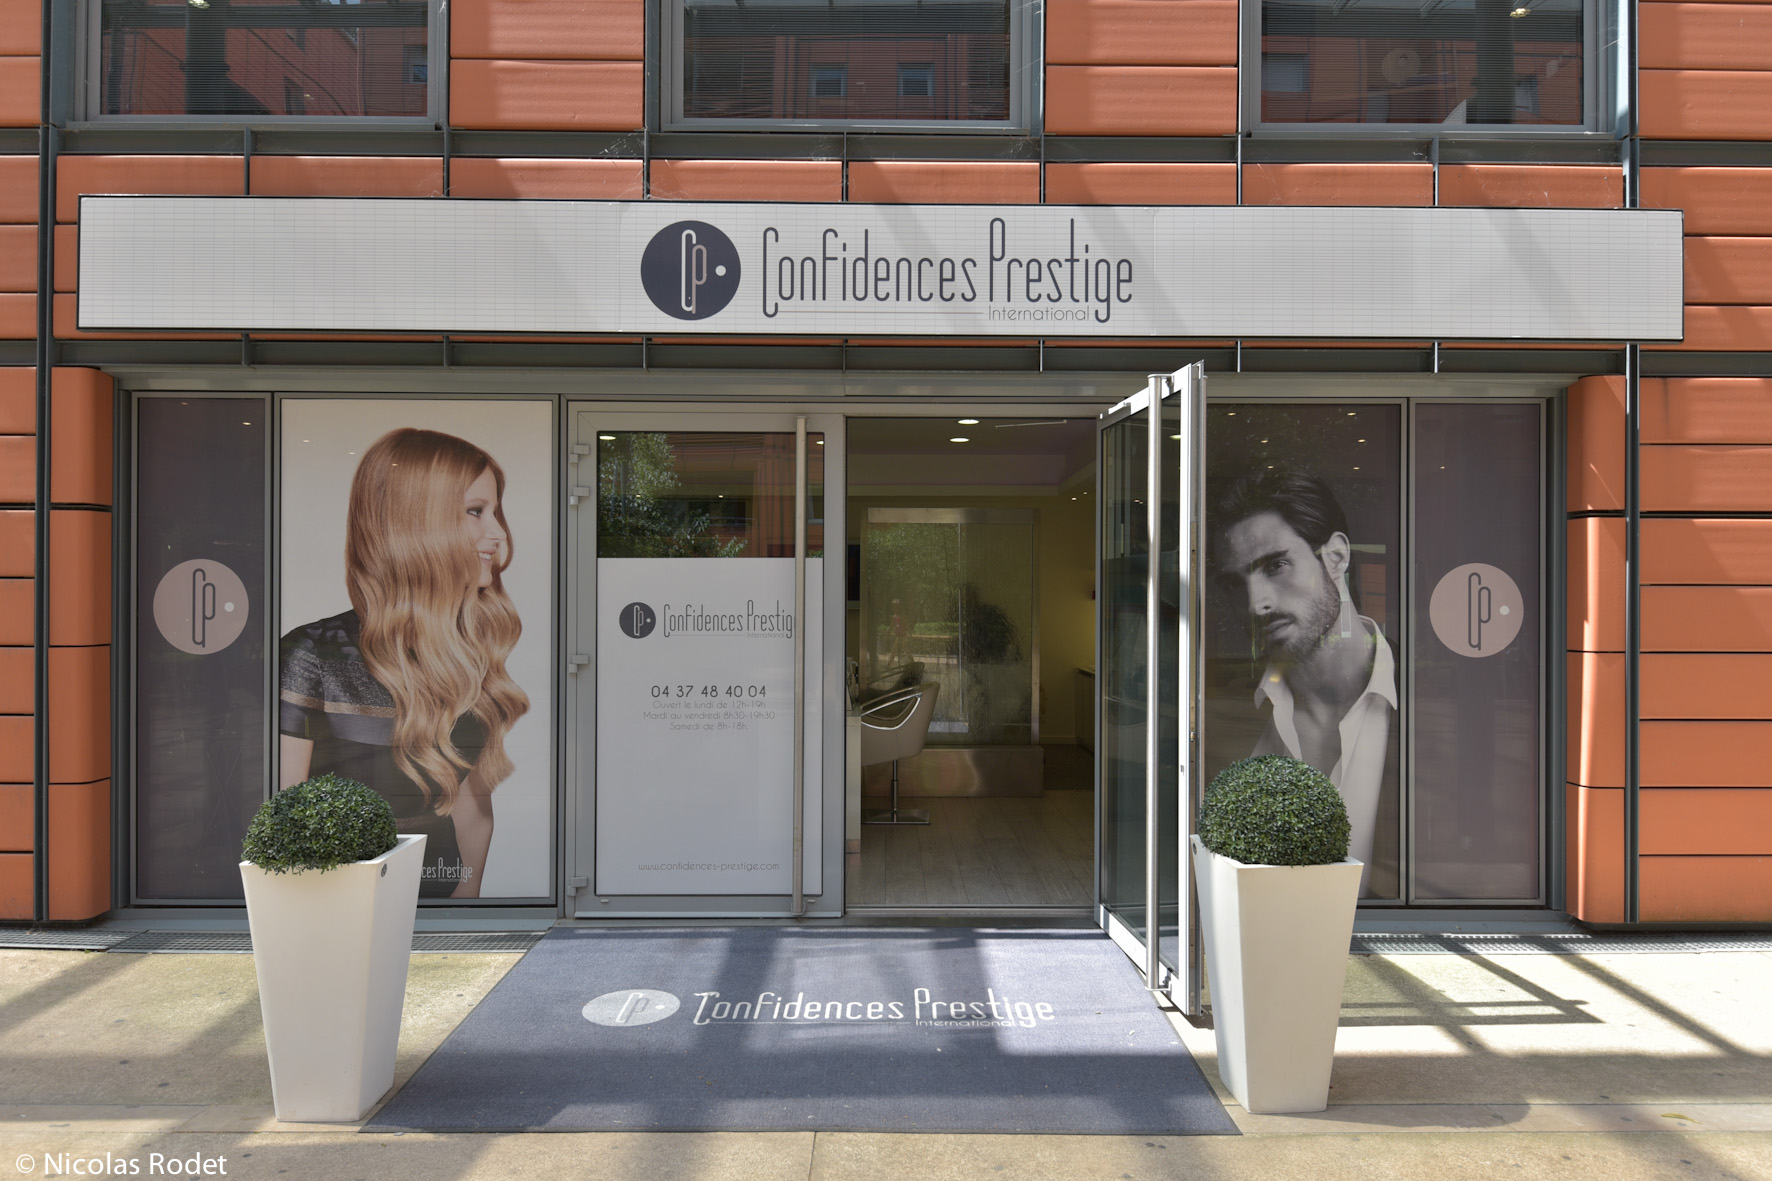 Salon De Coiffure Confidences Prestige